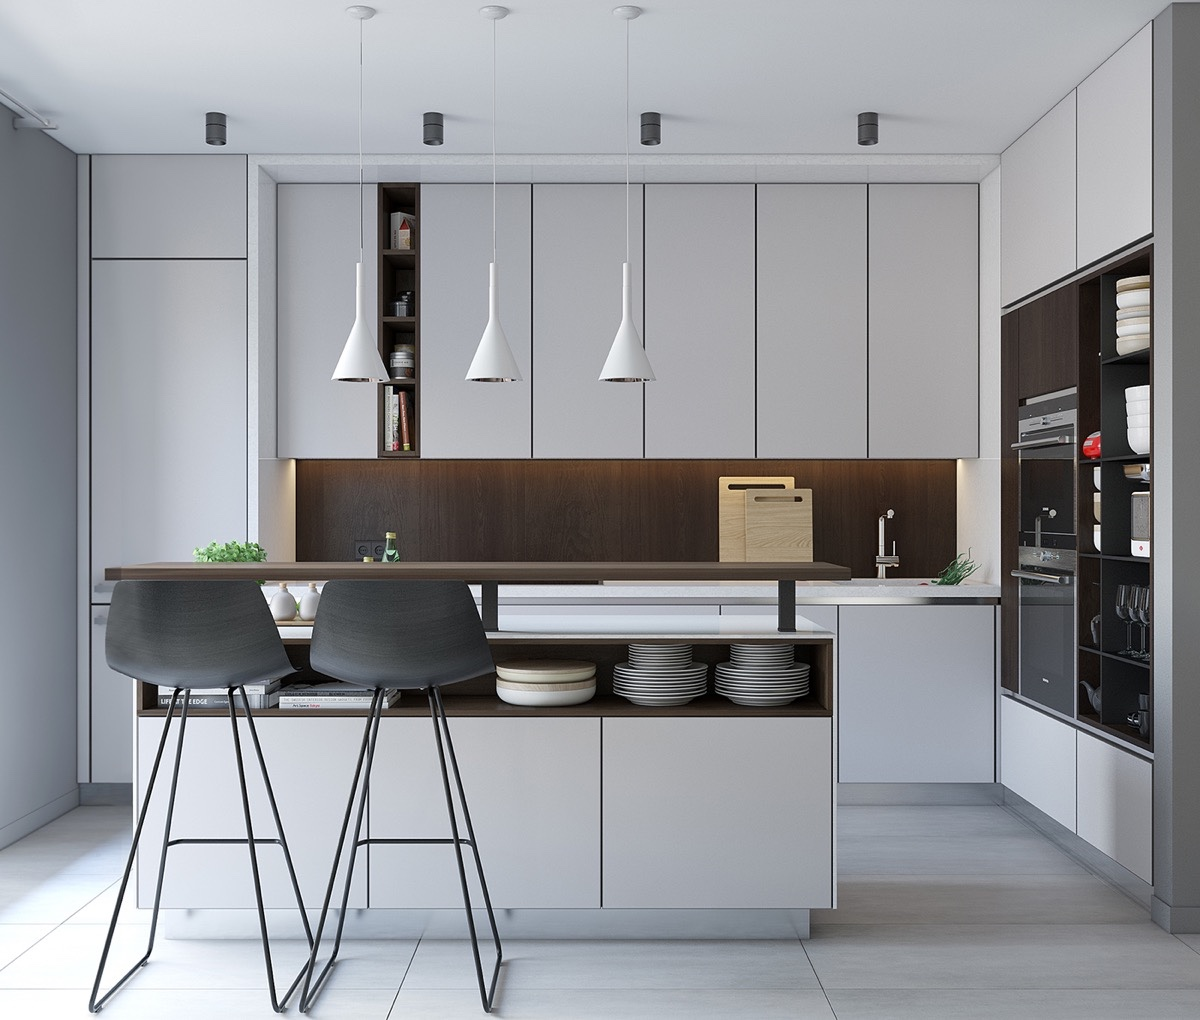 40 minimalist kitchens to get super sleek inspiration rh home designing com